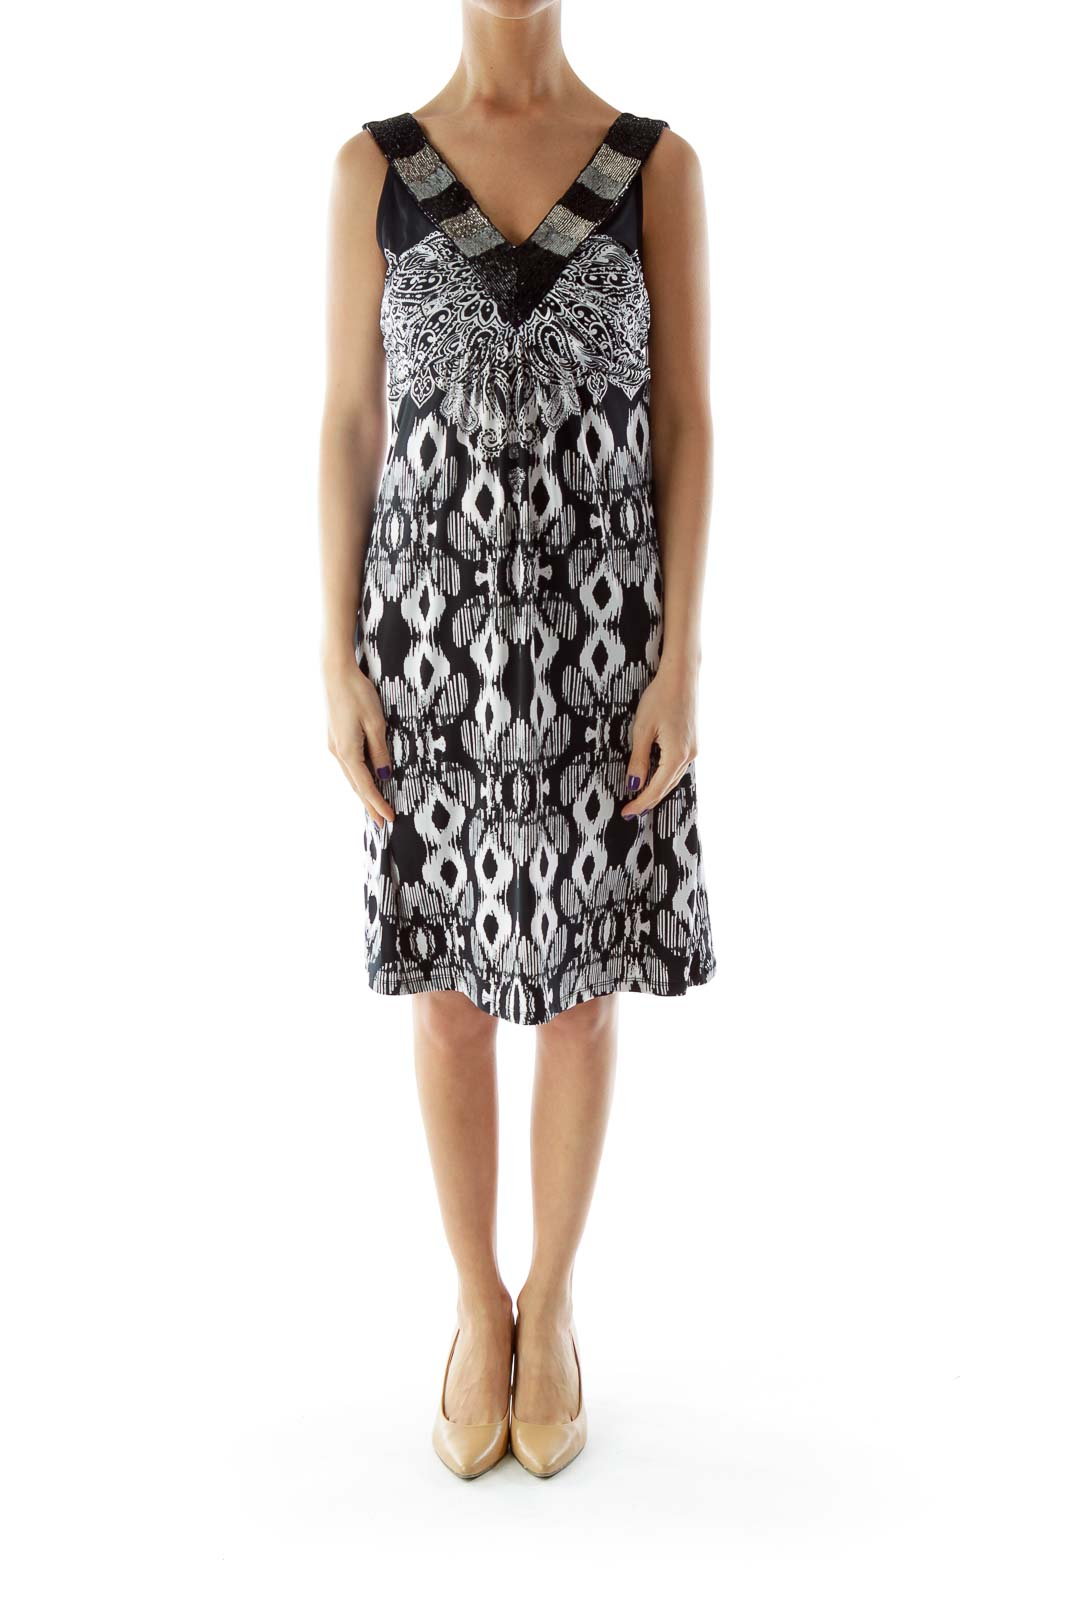 Black and White Print with Beaded Neckline